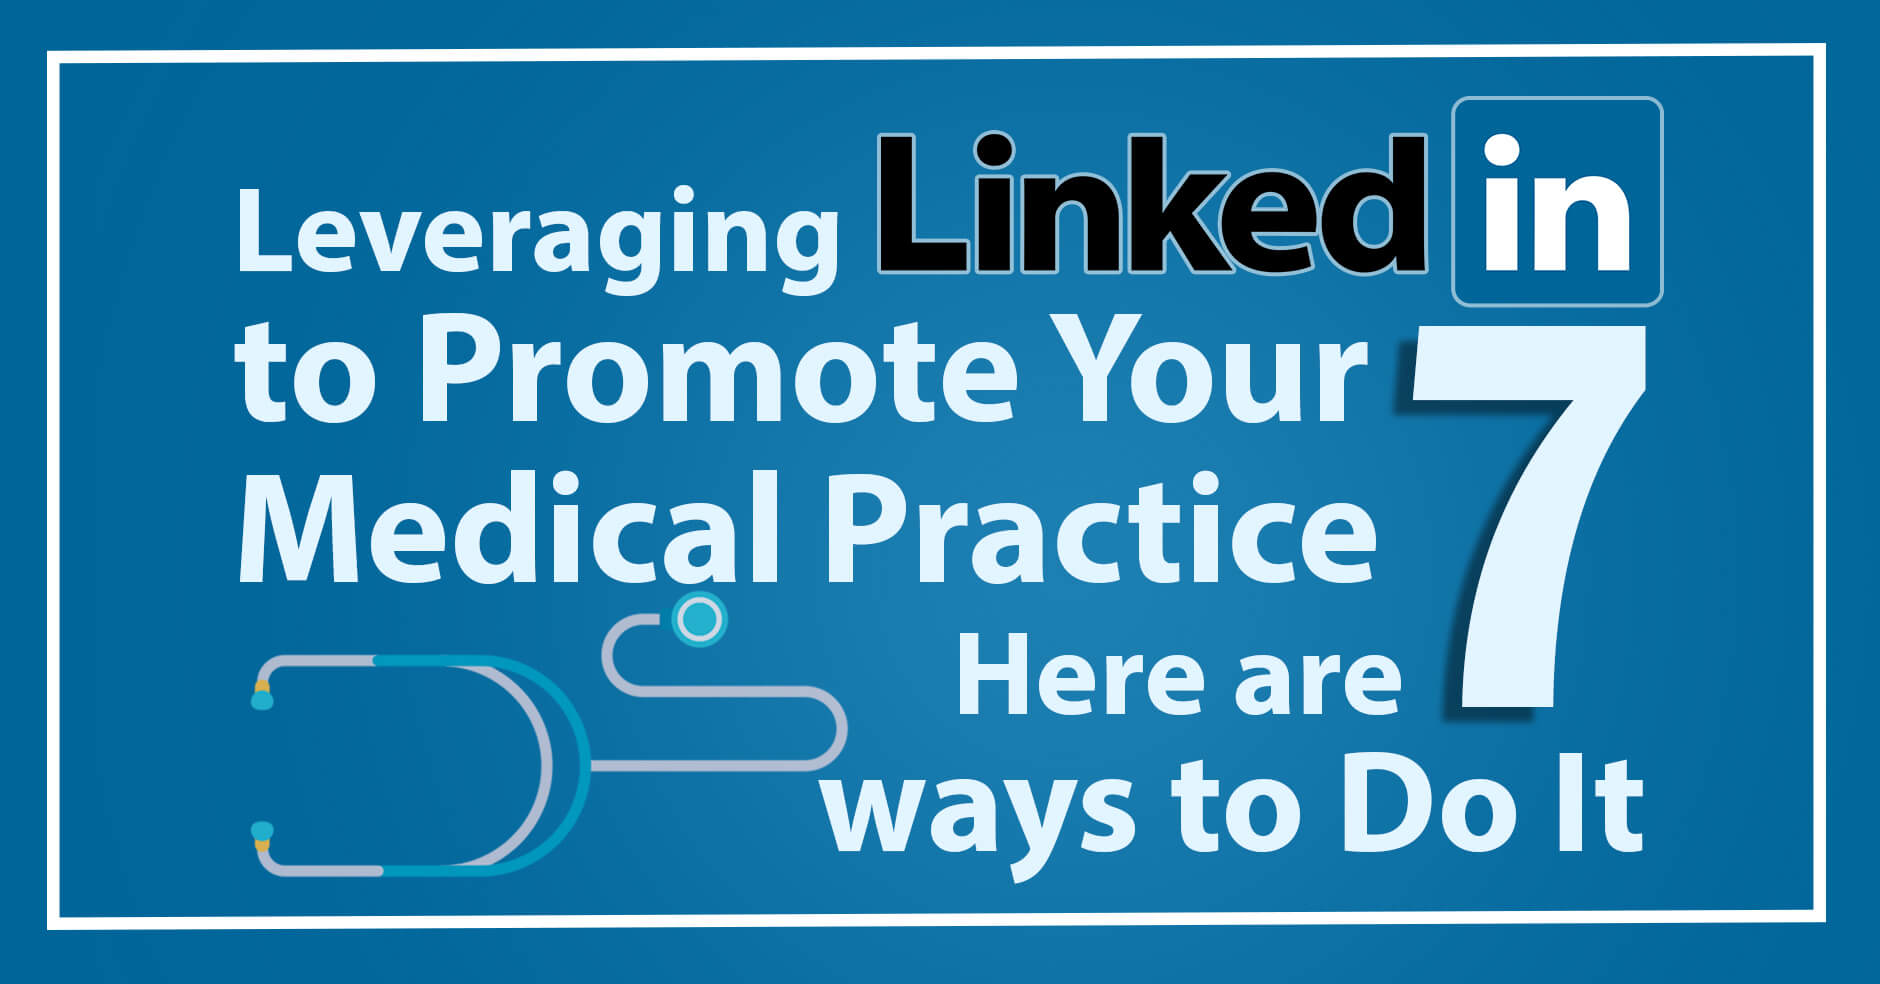 Leveraging LinkedIn to Promote Your Medical Practice – Here are 7 ways to Do It